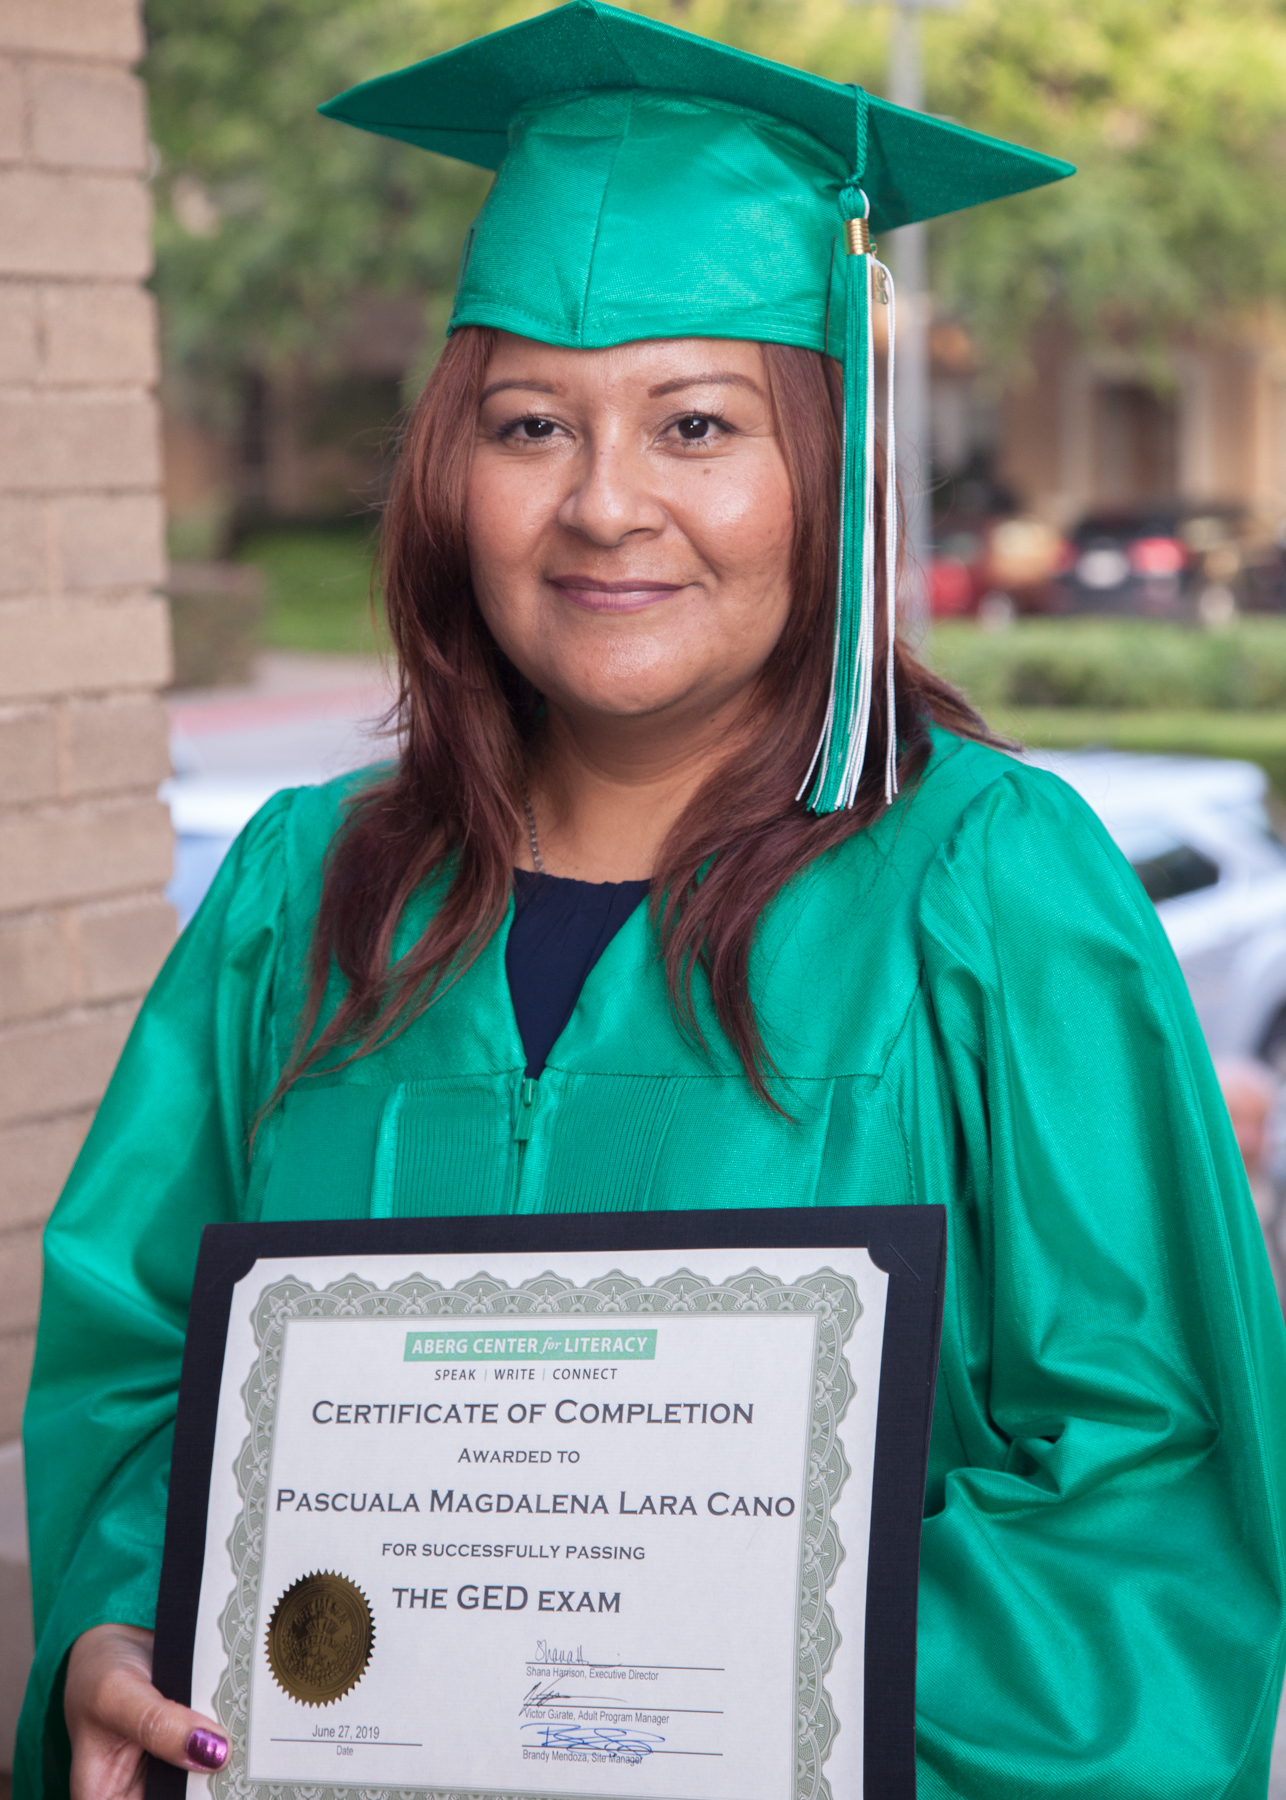 36-Aberg Center for Literacy - June 2019 Graduation.jpg